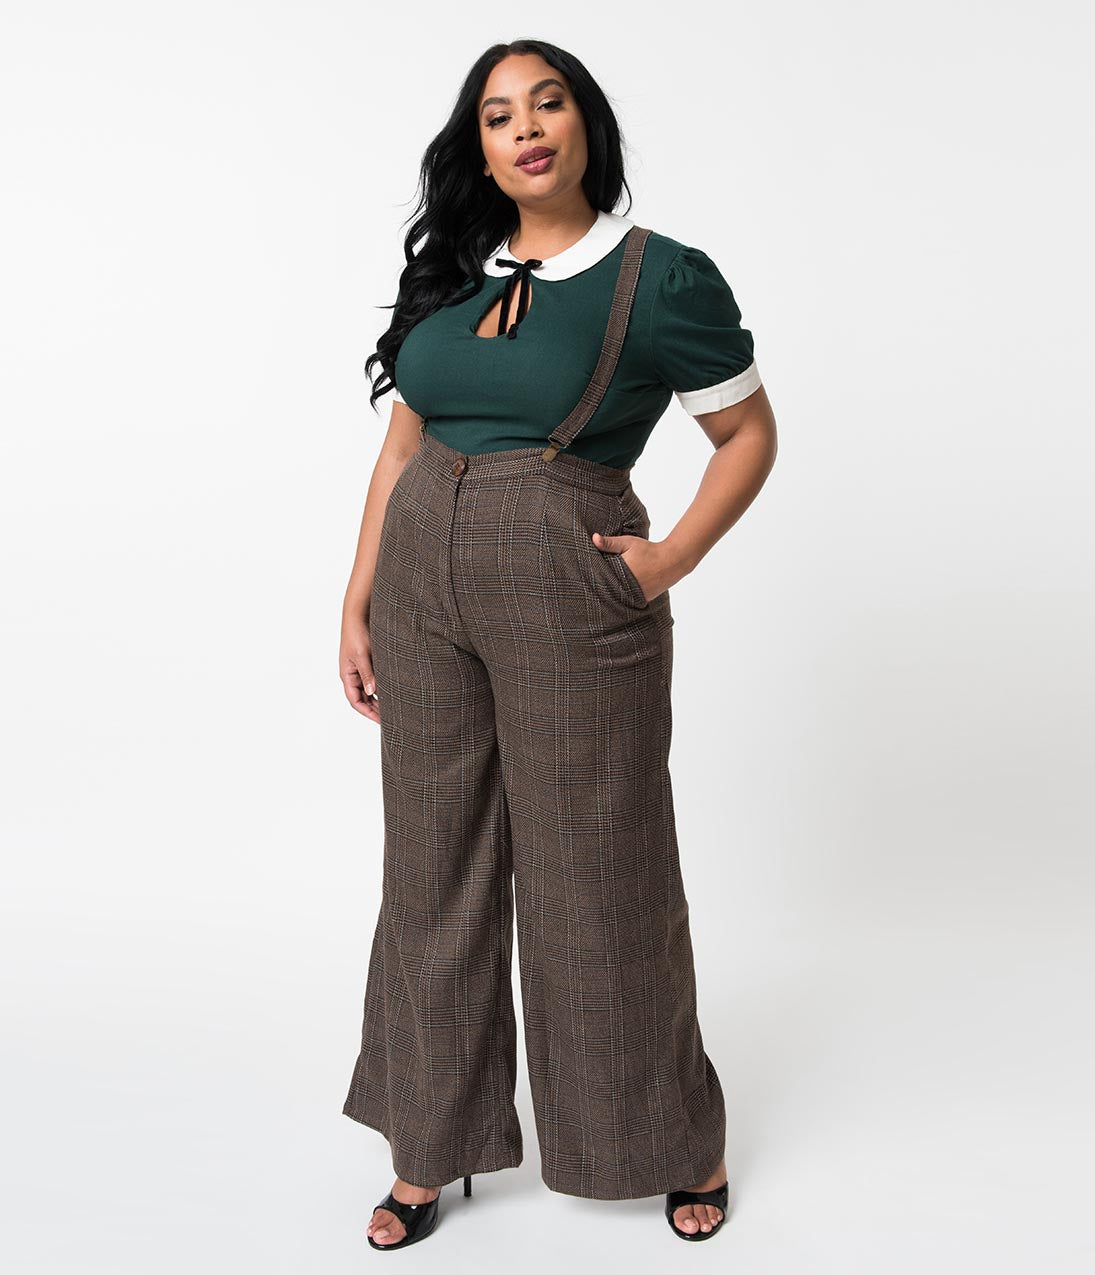 Did Women Wear Pants in the 1920s? Yes! sort of… Collectif Plus Size 1940S Style Brown Librarian Check High Waist Glinda Suspender Pants $58.00 AT vintagedancer.com